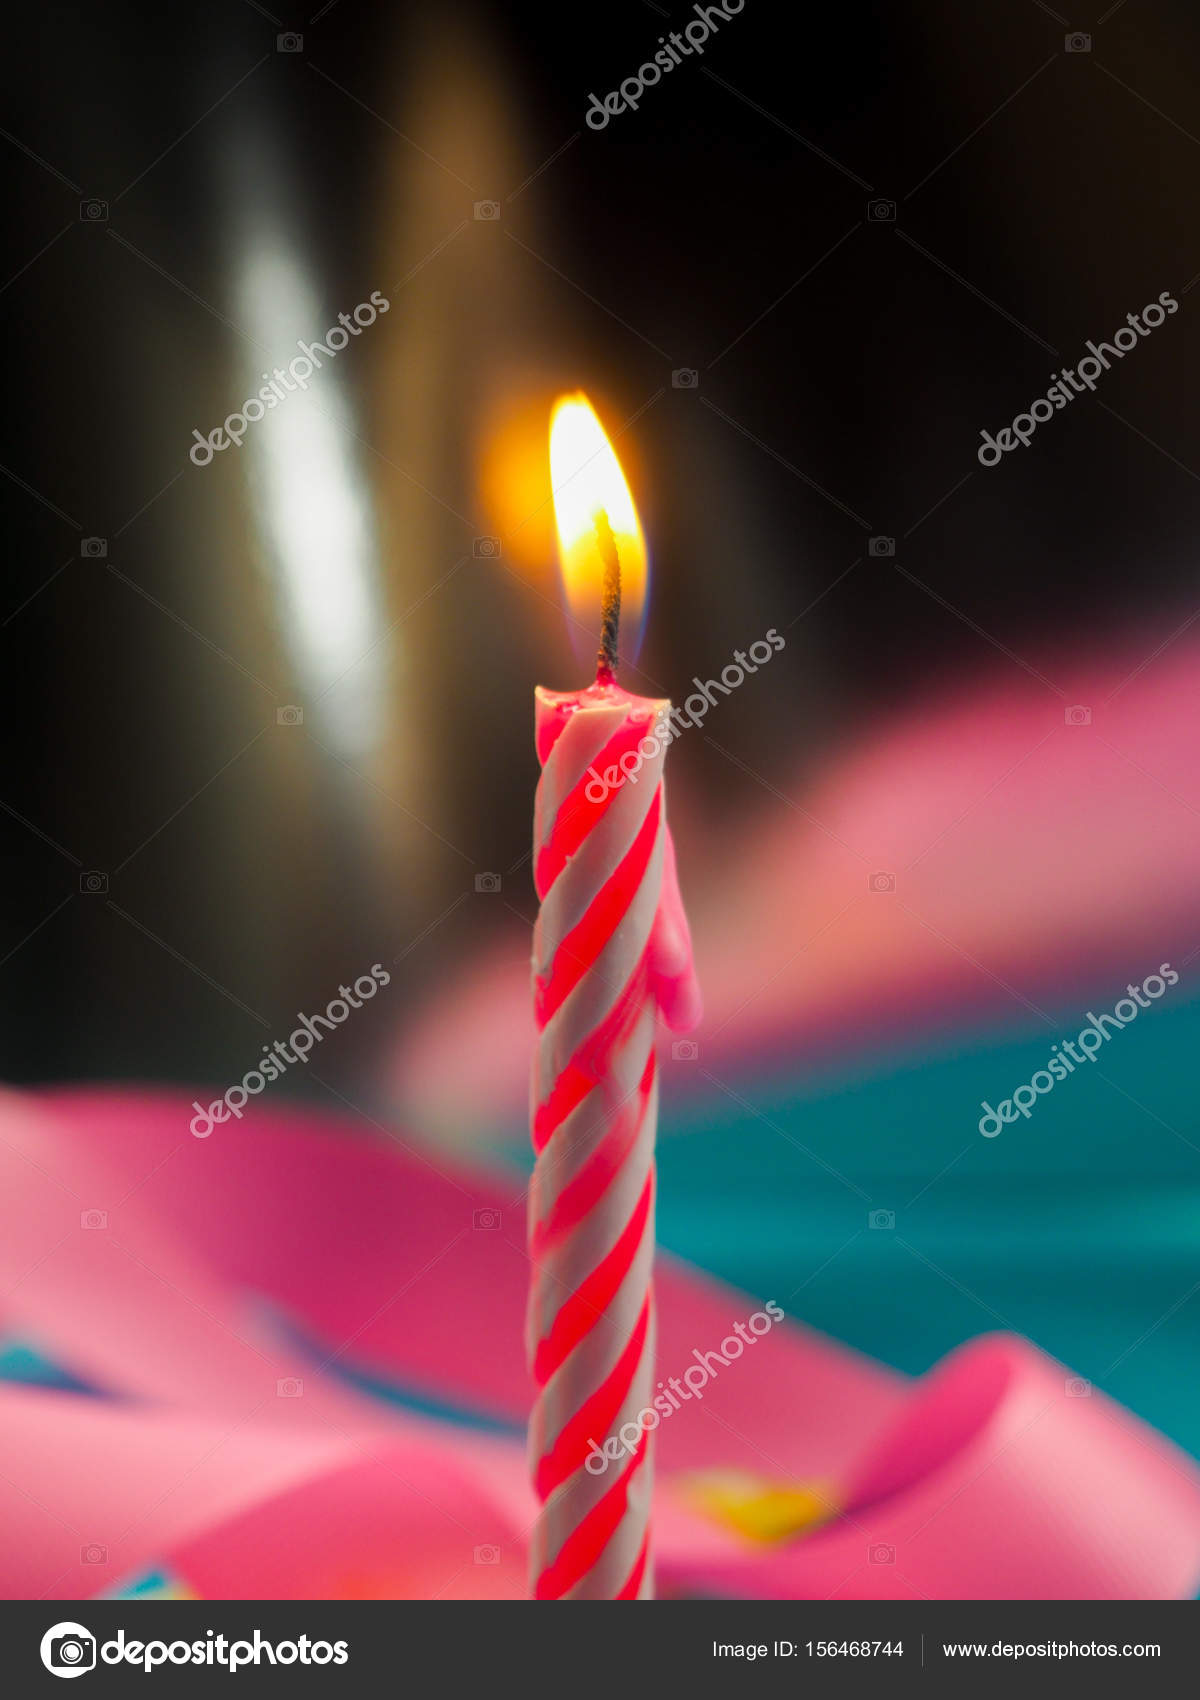 Candle Birthday Burning Background Other Candles Pink Ribbons Festive Atmosphere Stock Photo C Byallasaa 156468744